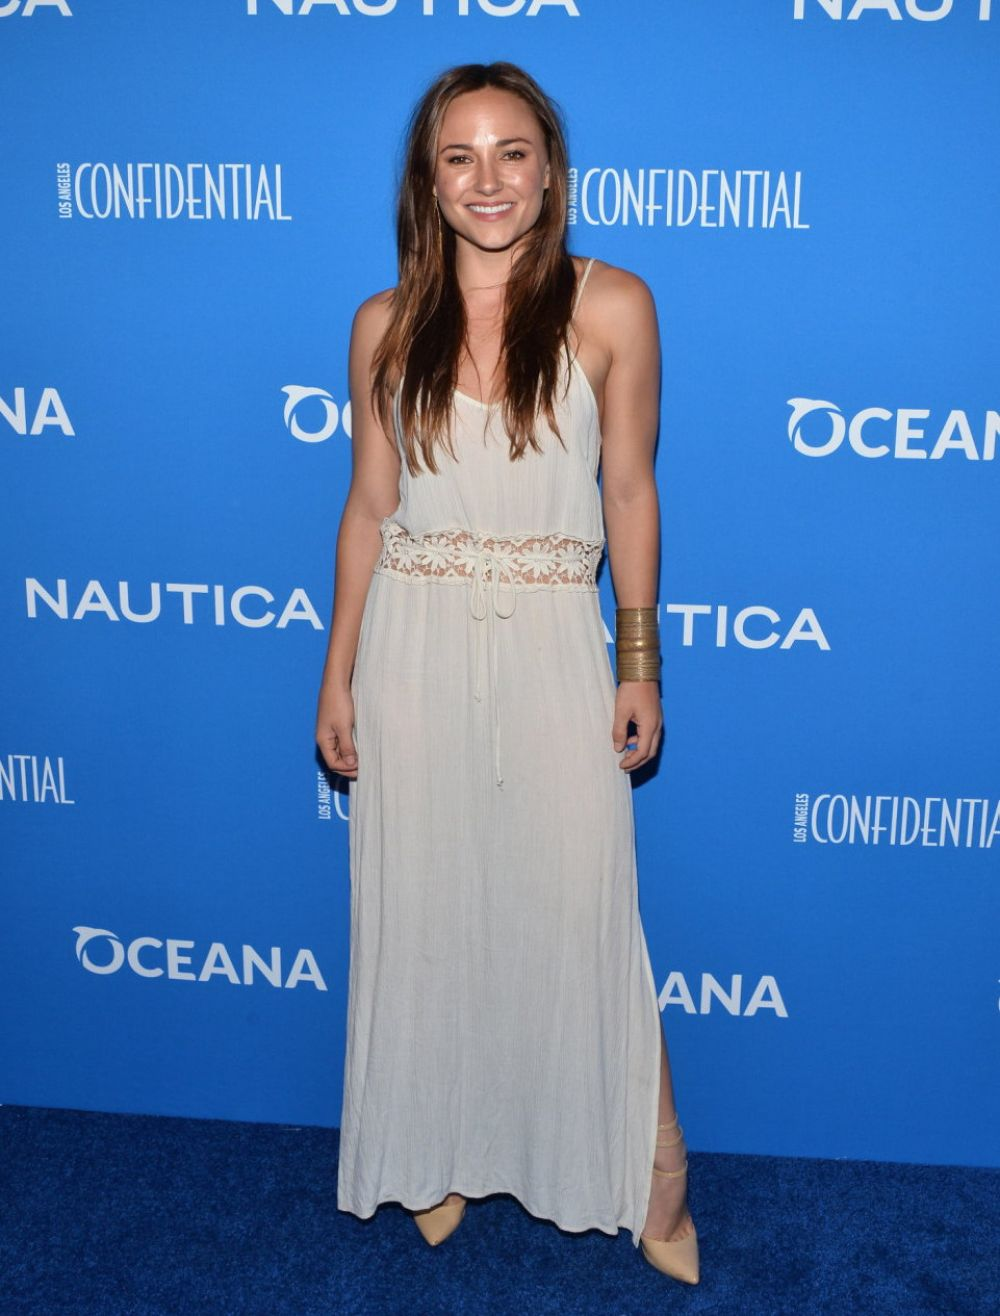 BRIANA EVIGAN at 3rd Annual Nautica Oceana Beach House Party in Santa Monica